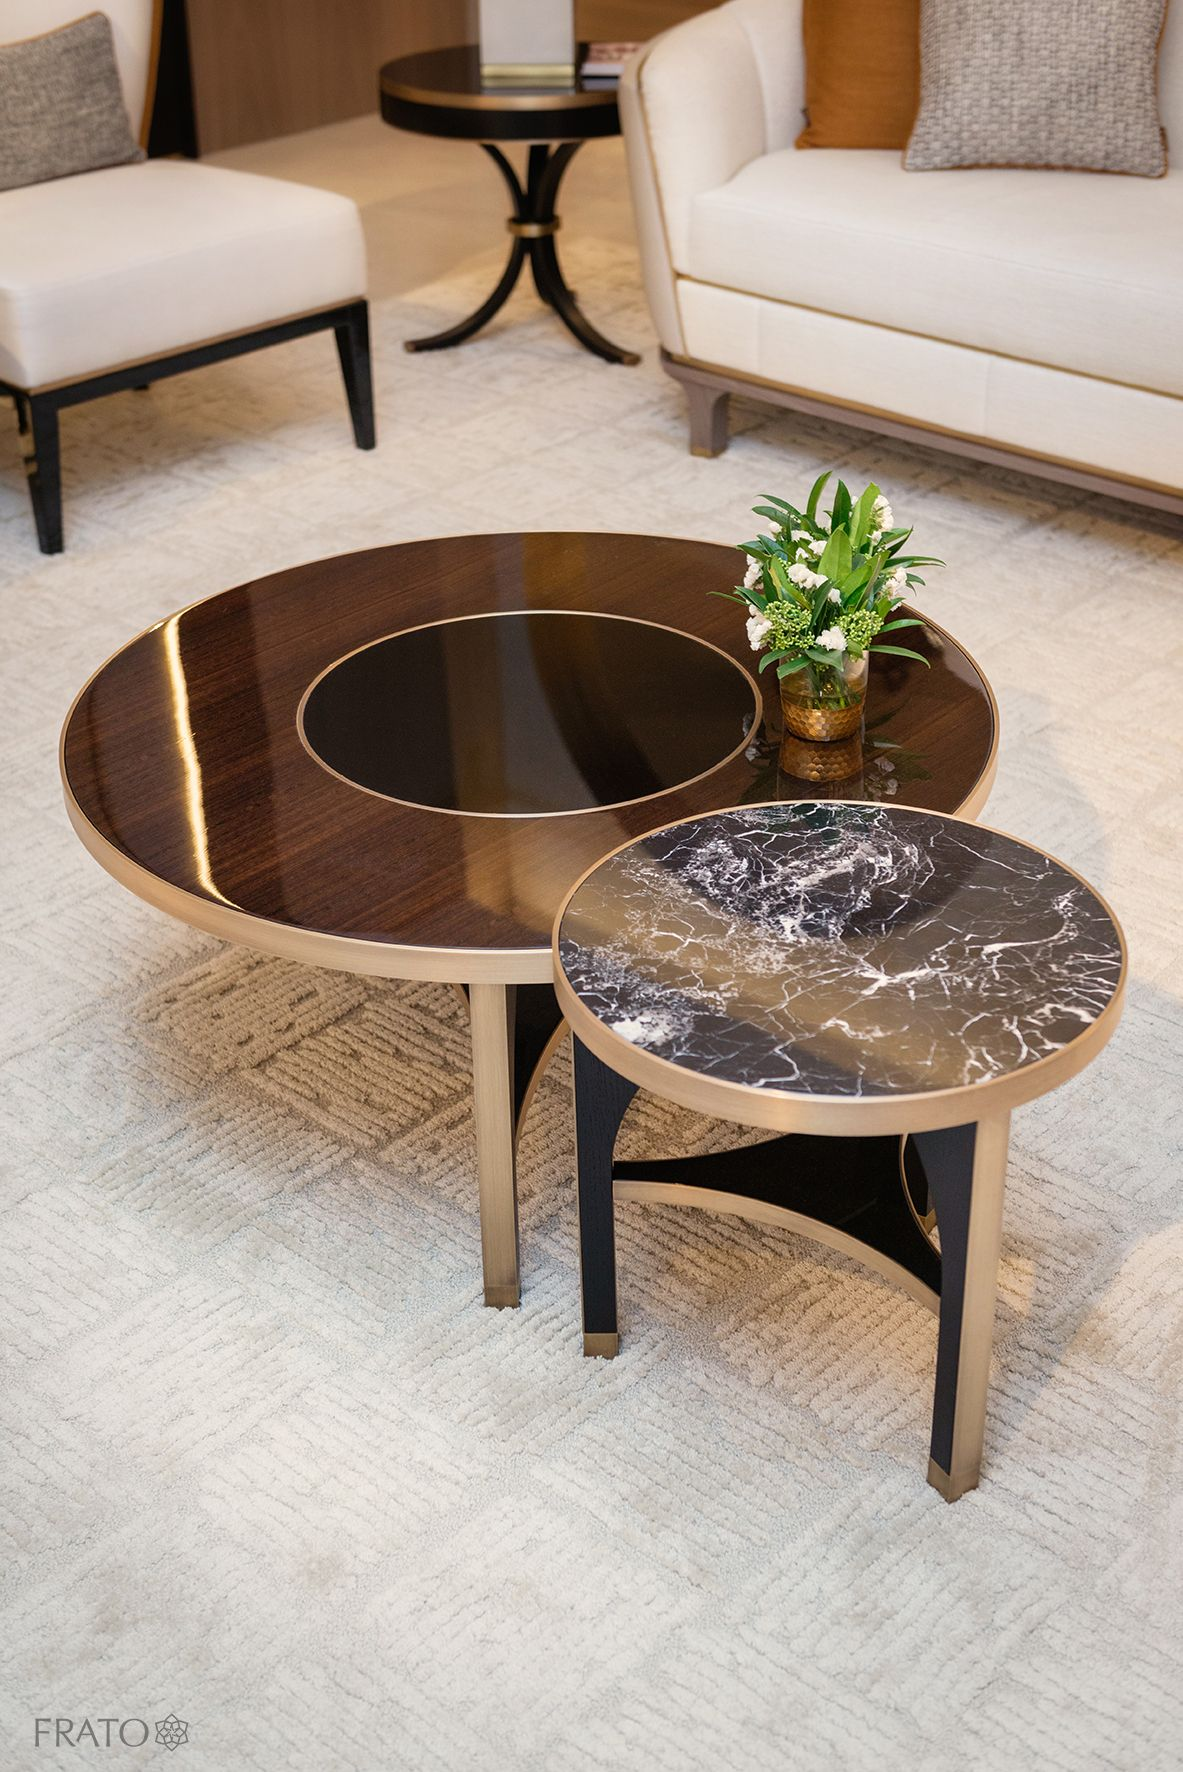 Rounded Furniture Art Deco 2019designtrends In 2020 Coffe Table Decor Center Table Living Room Centre Table Living Room